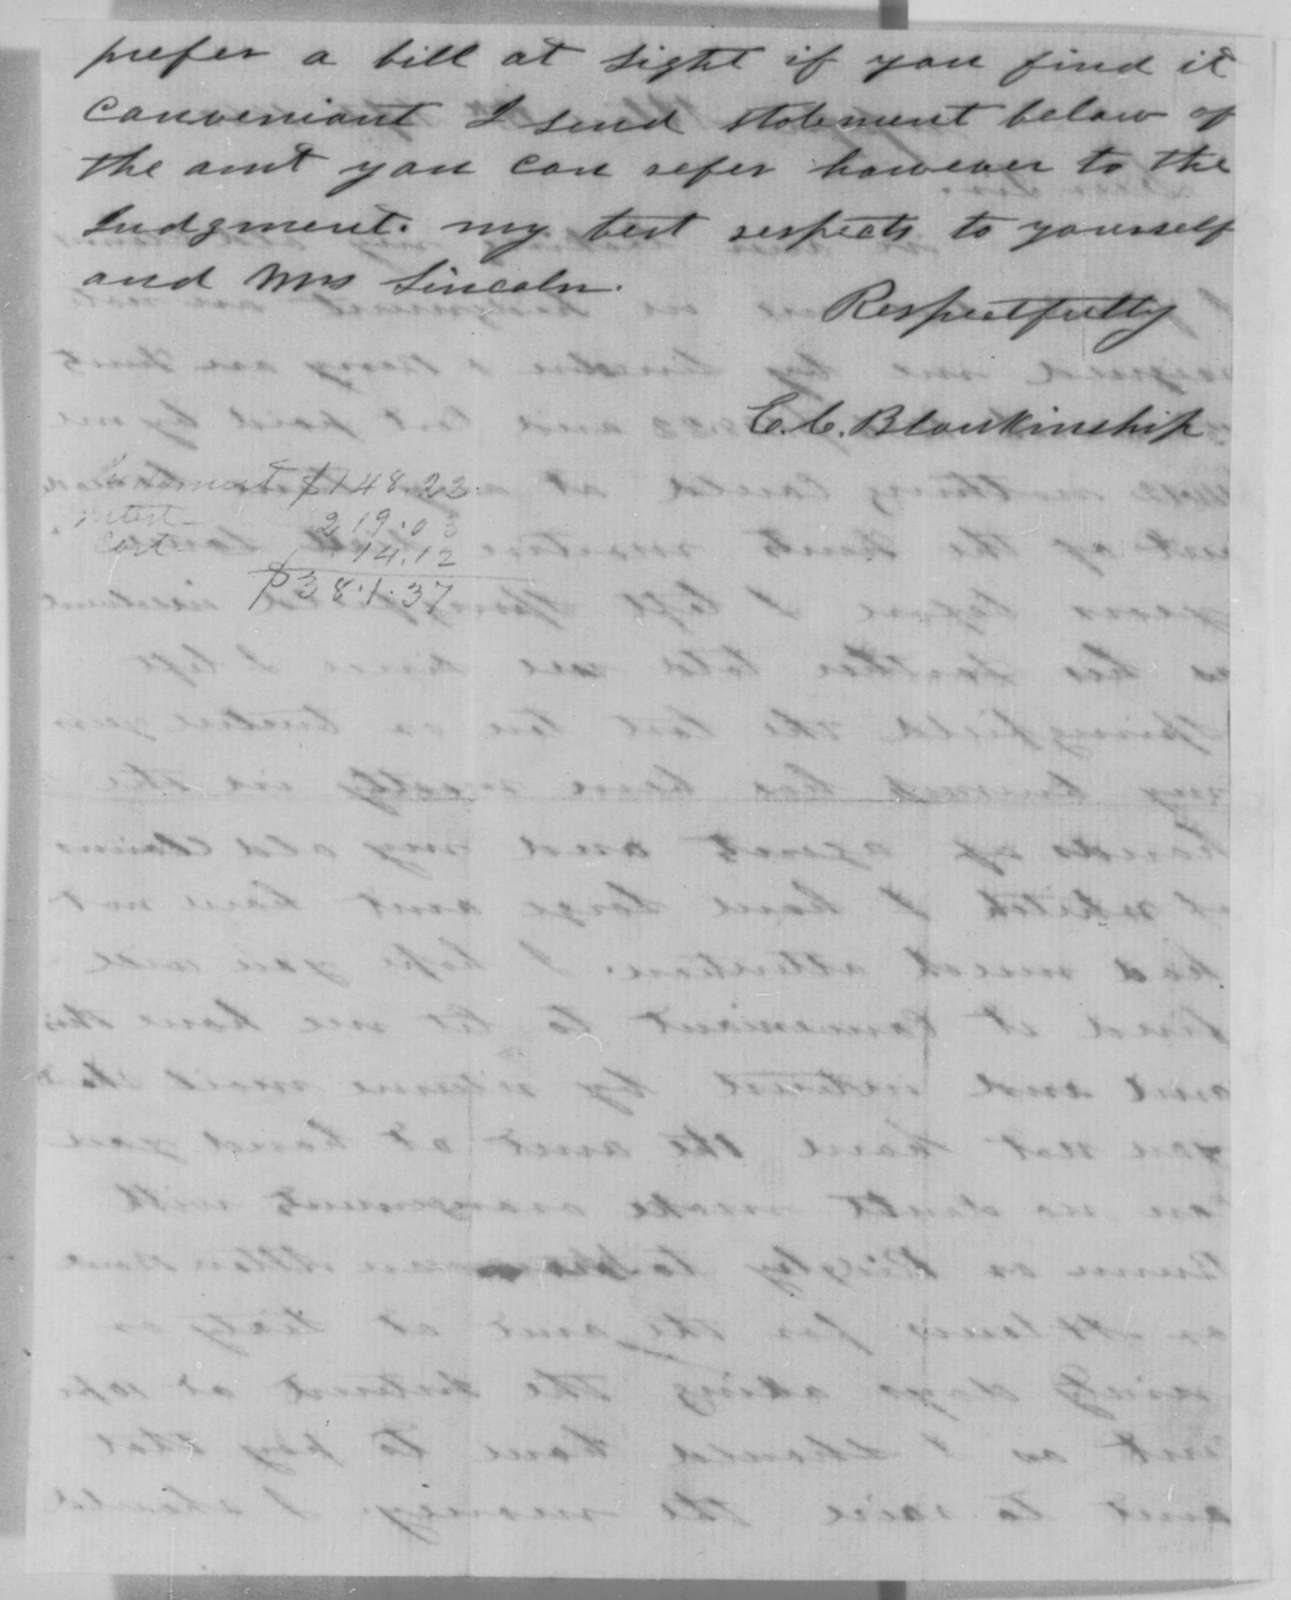 Eli C. Blankinship to Abraham Lincoln, Wednesday, September 12, 1860  (Claims Lincoln owes him money)